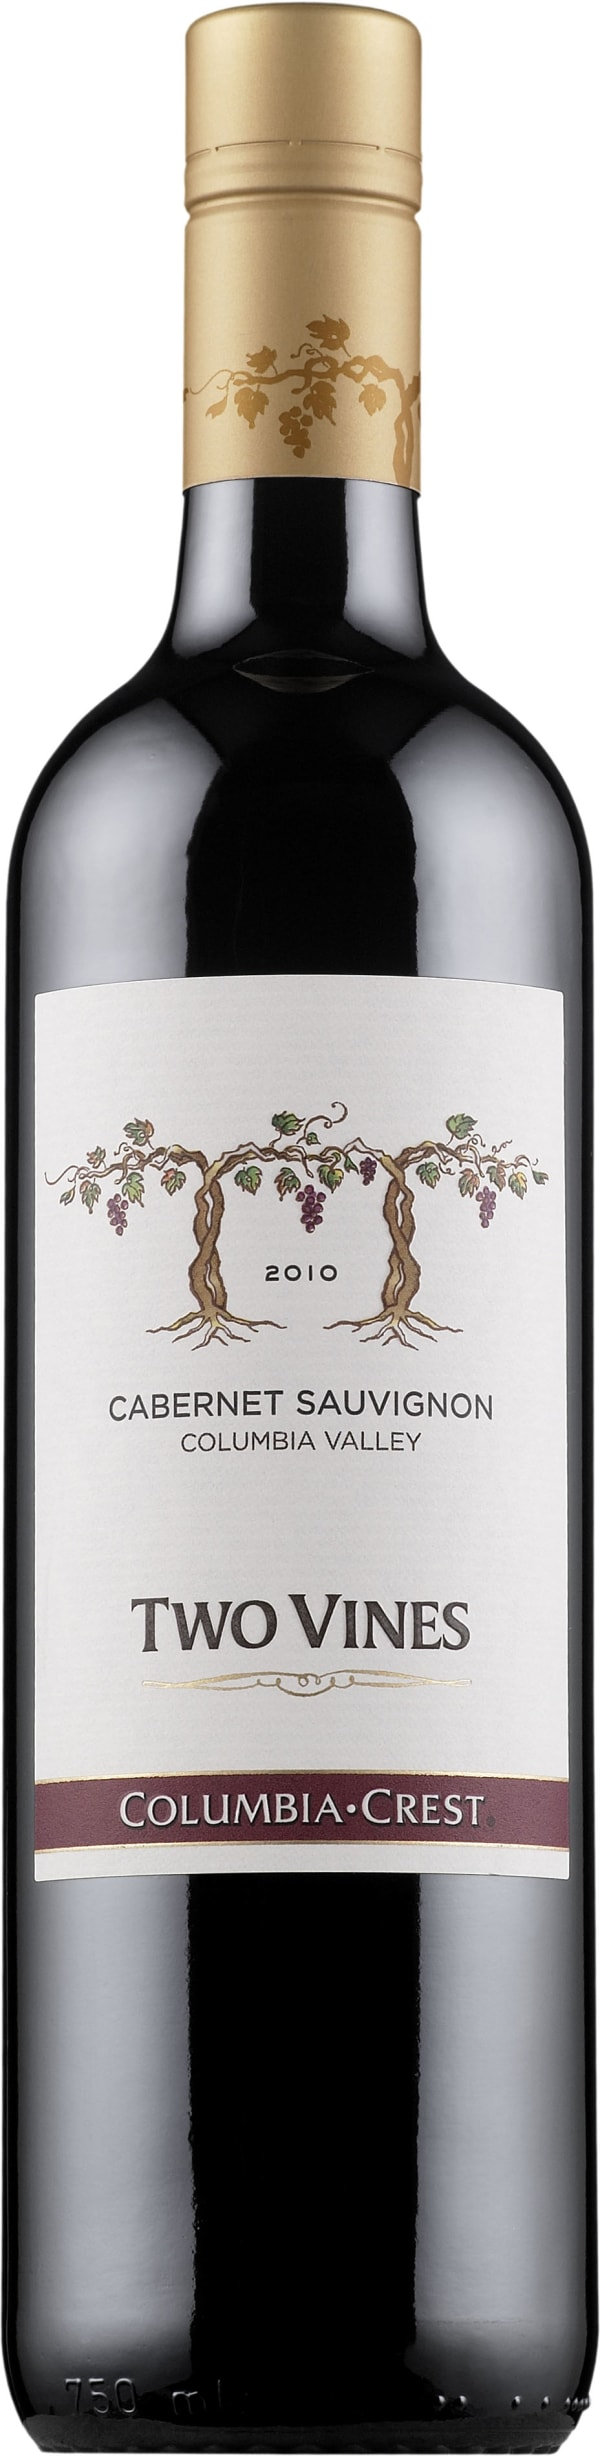 Columbia Crest Two Vines Cabernet Sauvignon 2012